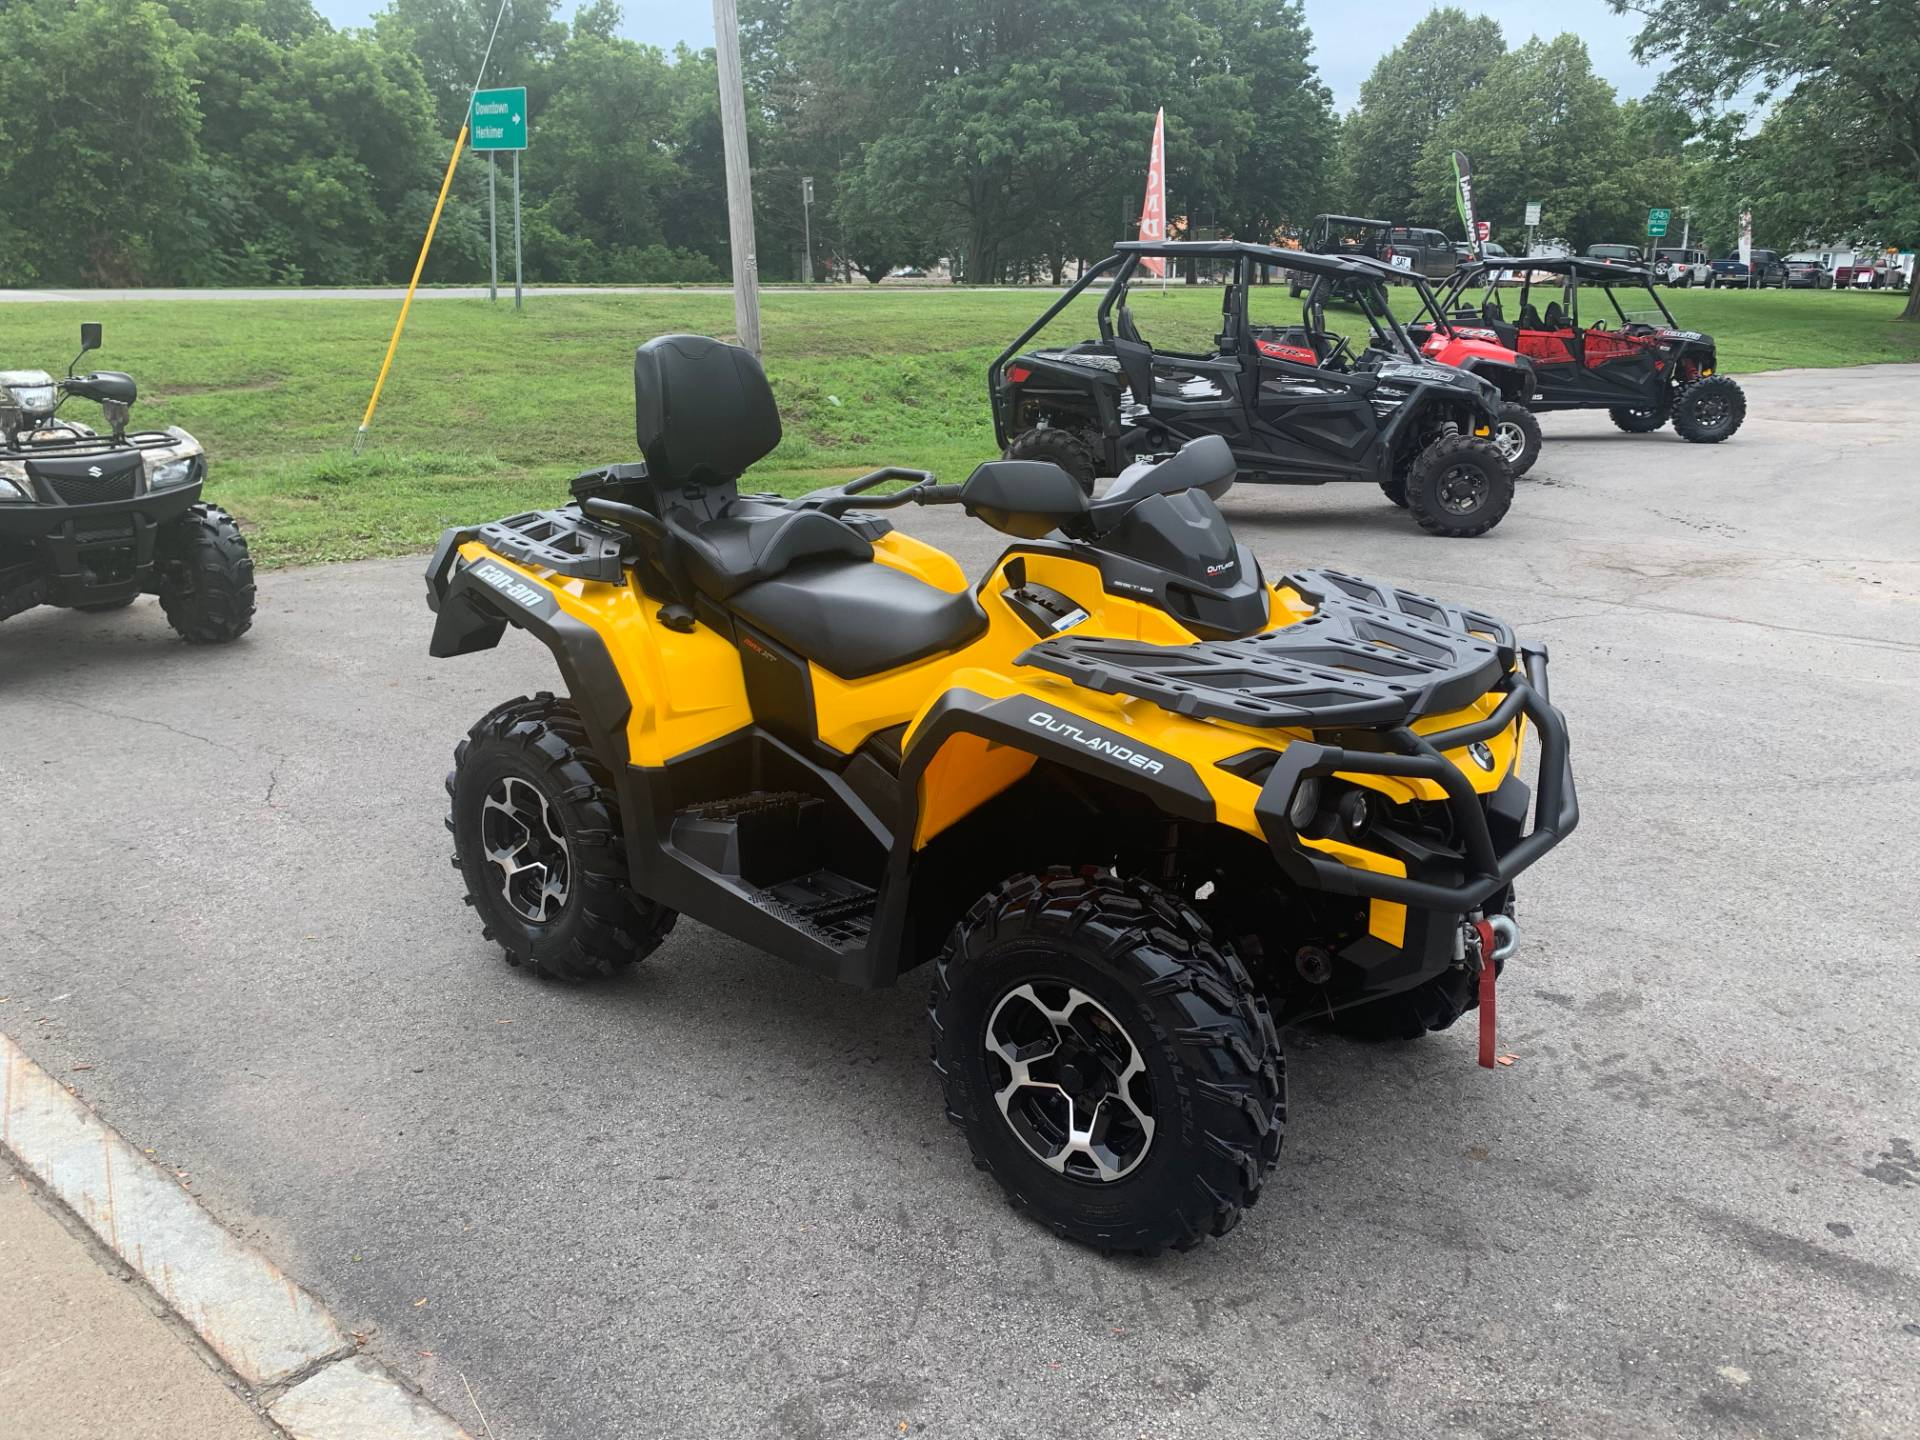 2016 Can-Am Outlander MAX XT 570 in Herkimer, New York - Photo 6